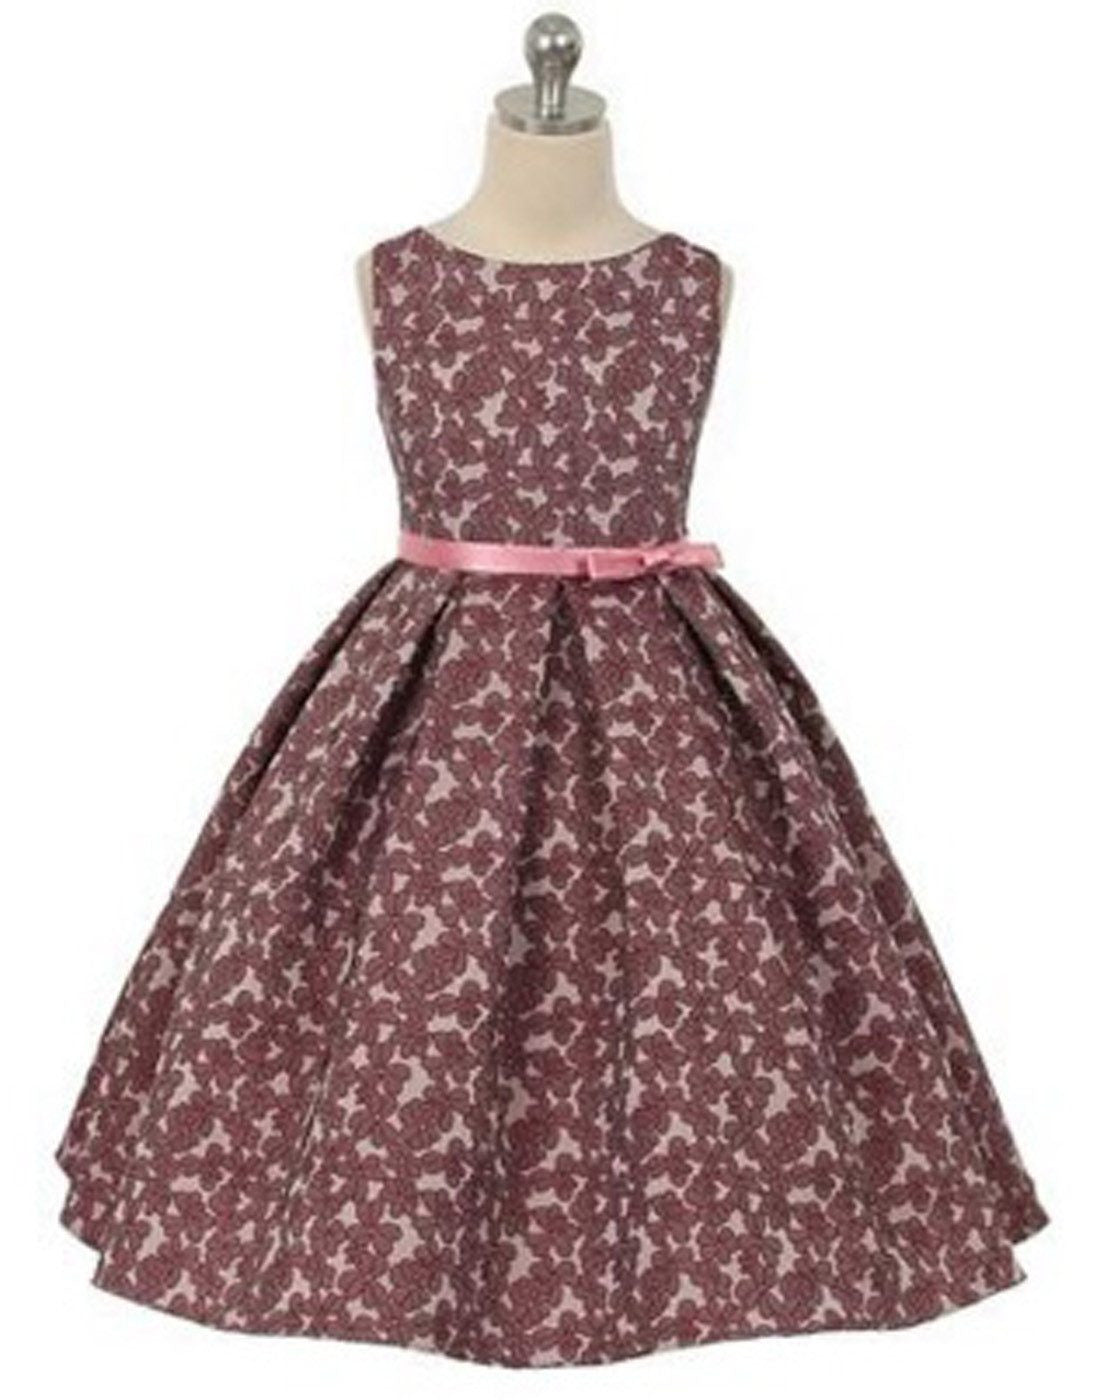 Blossomy Floral Print Flower Girl Dress Dusty Rose Efavormart